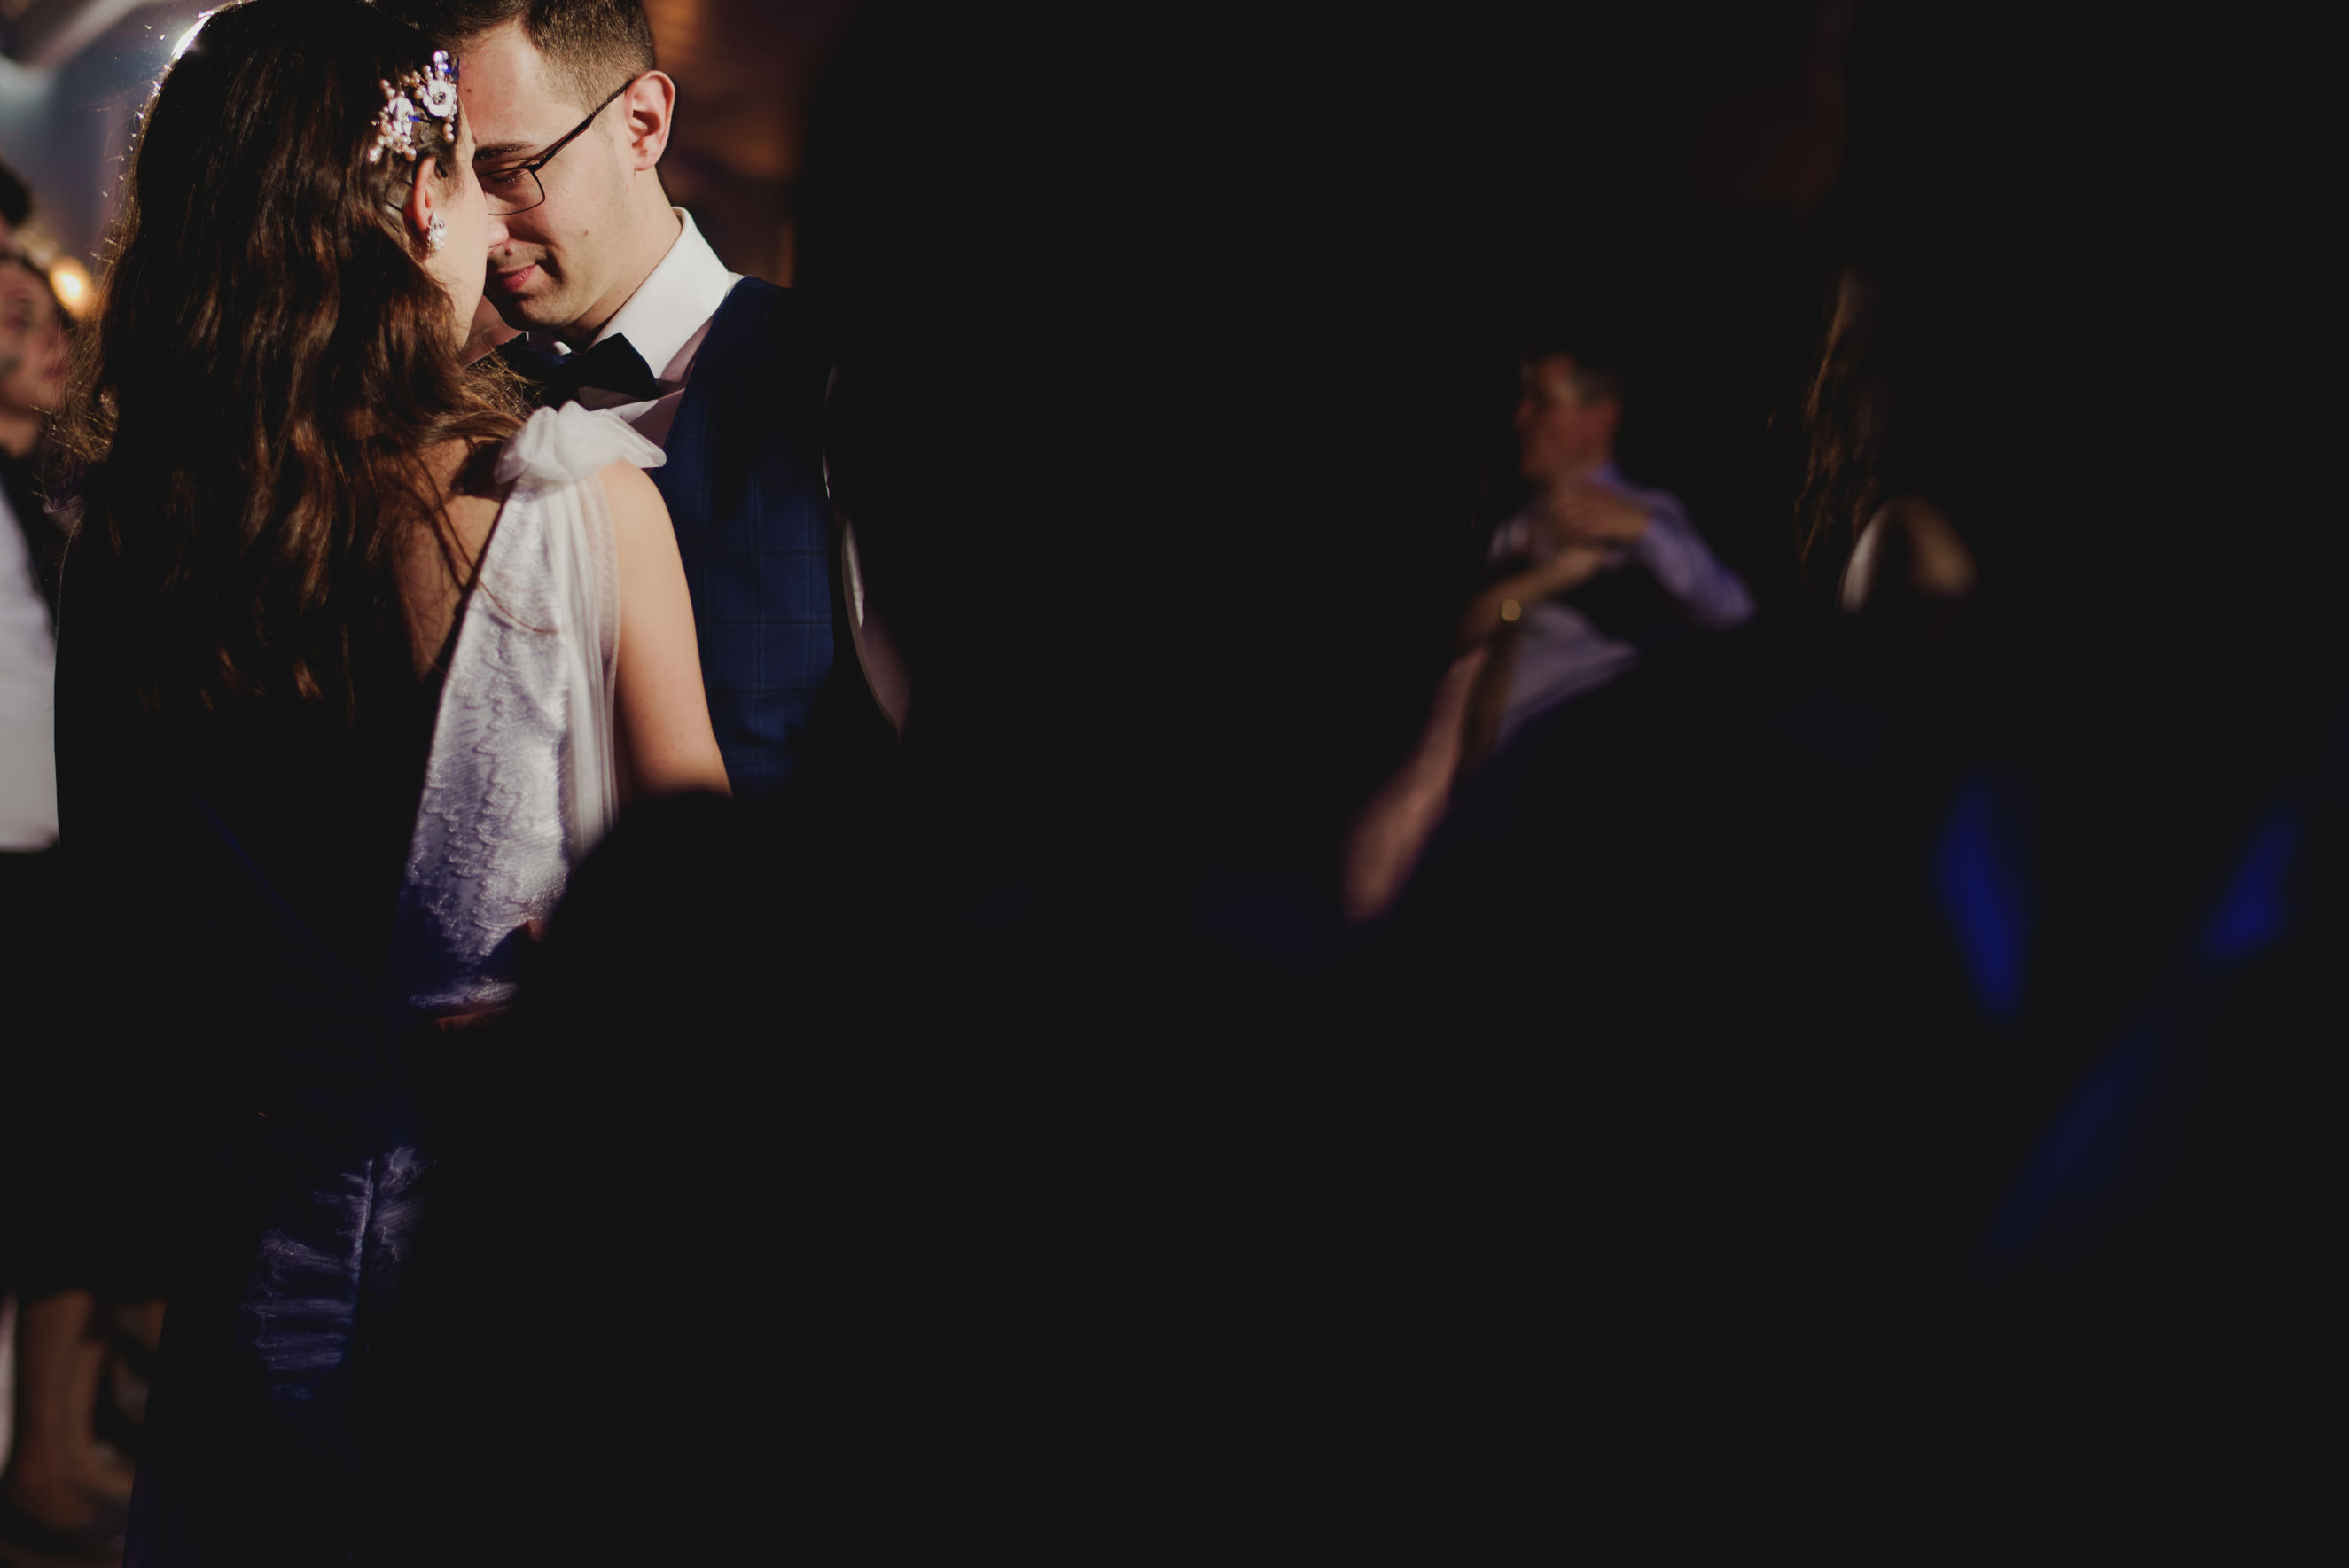 bride and groom having a private moment on filled dance floor